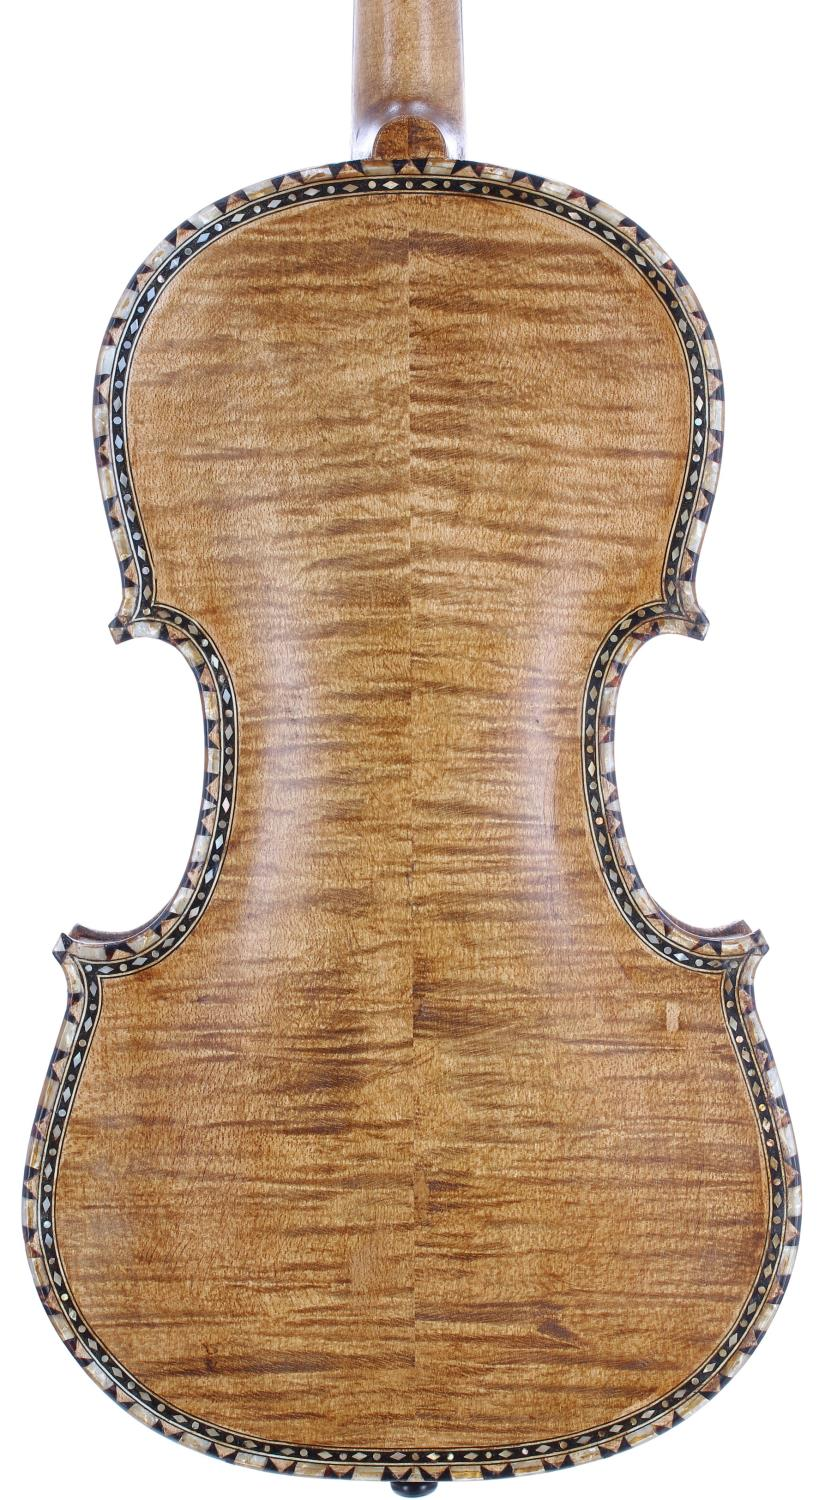 Interesting eight string Hardanger fiddle bearing a retail label inscribed GEH Fergul...1967, with - Image 2 of 3